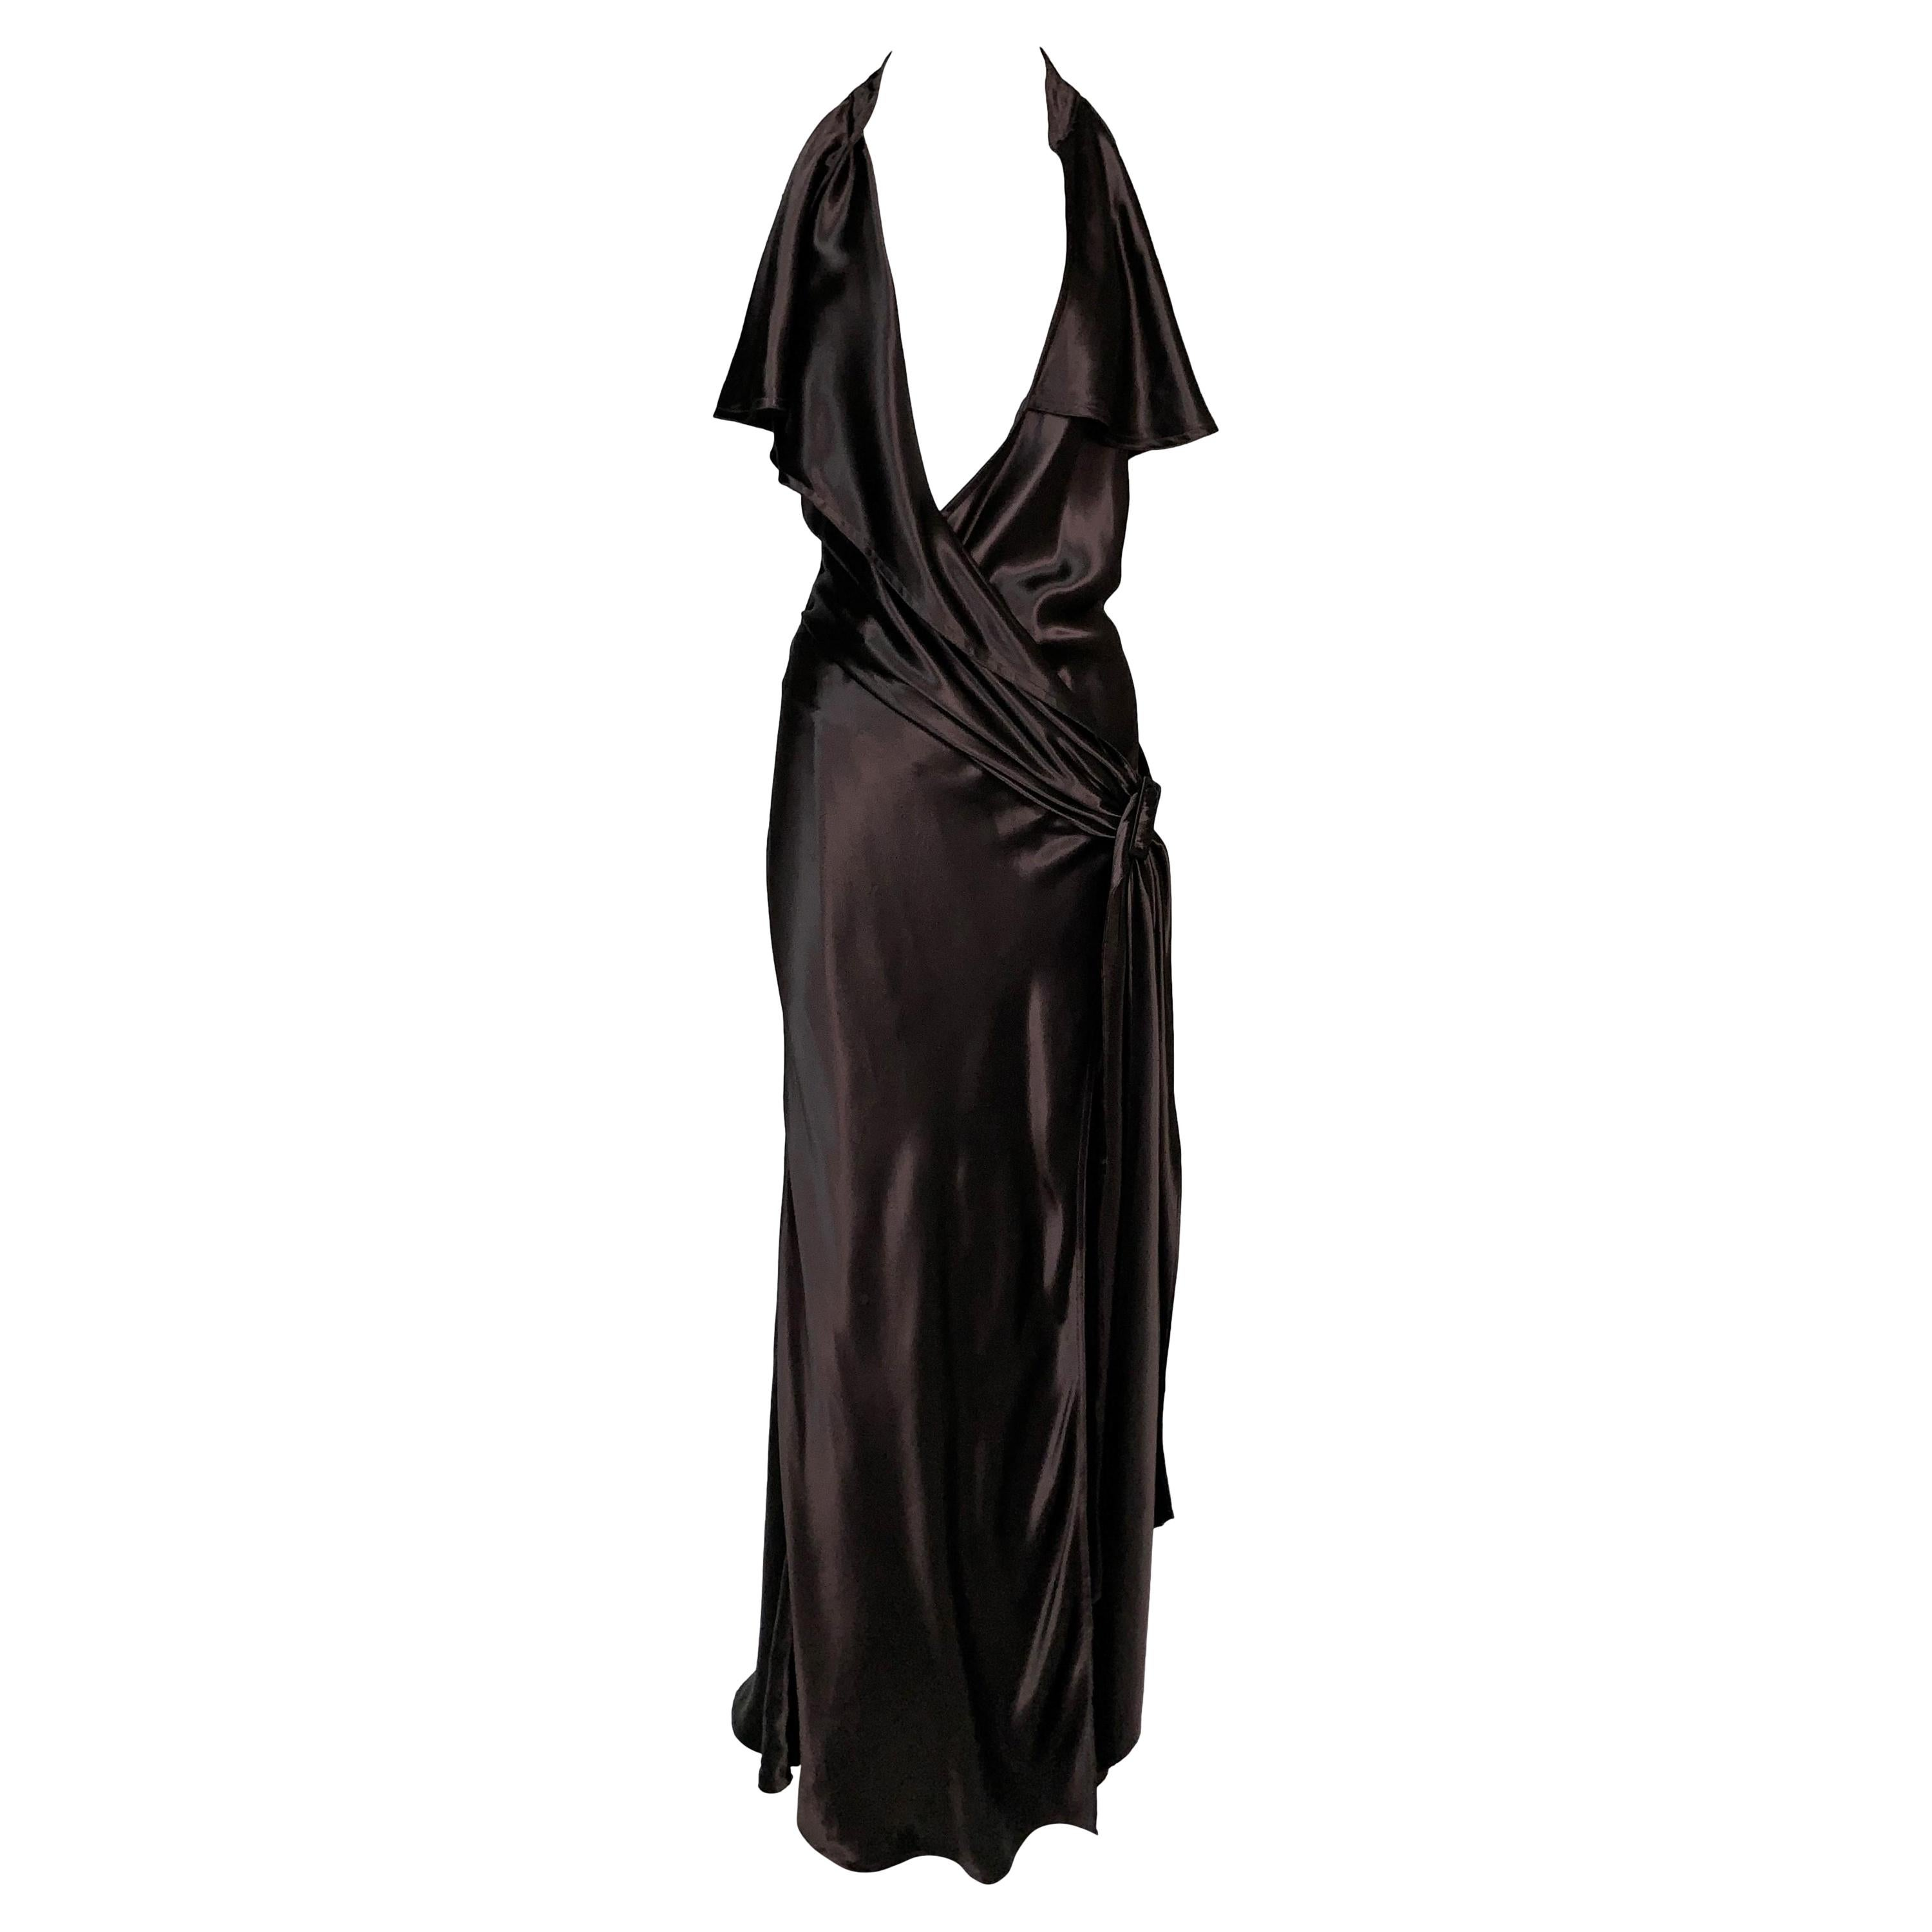 2000's Jean Paul Gaultier Brown Satin Plunging Cut-Out Gown Dress